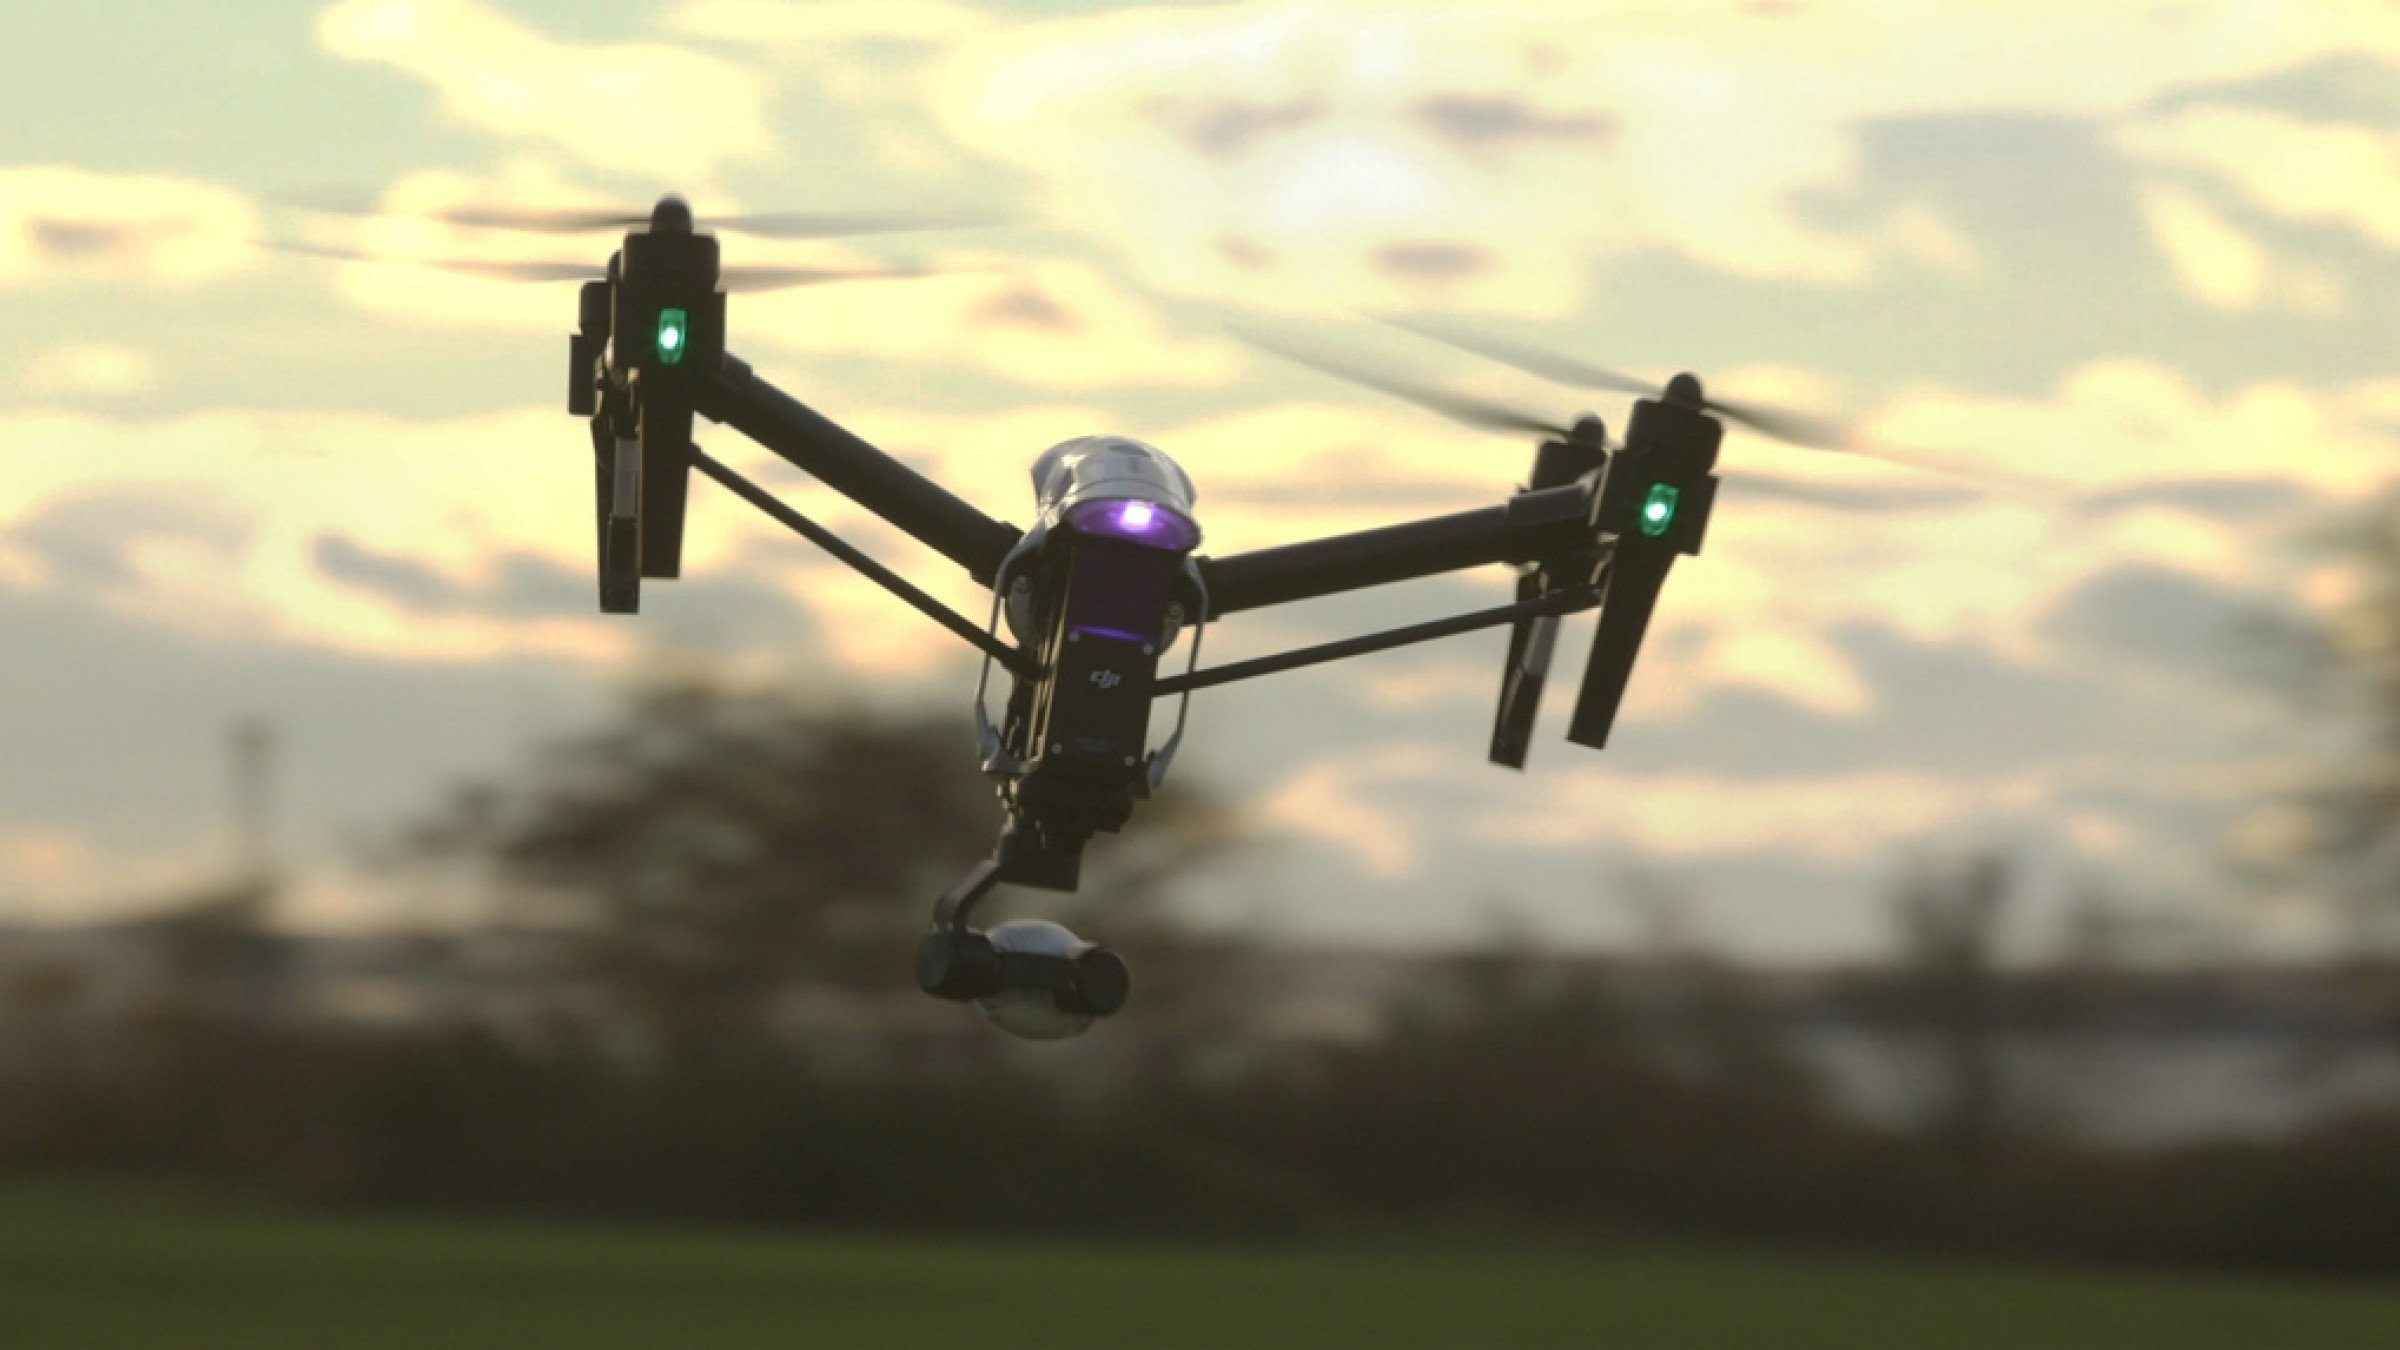 Meet The DJI Inspire 1 Most Advanced 4K Prosumer Drone To Date